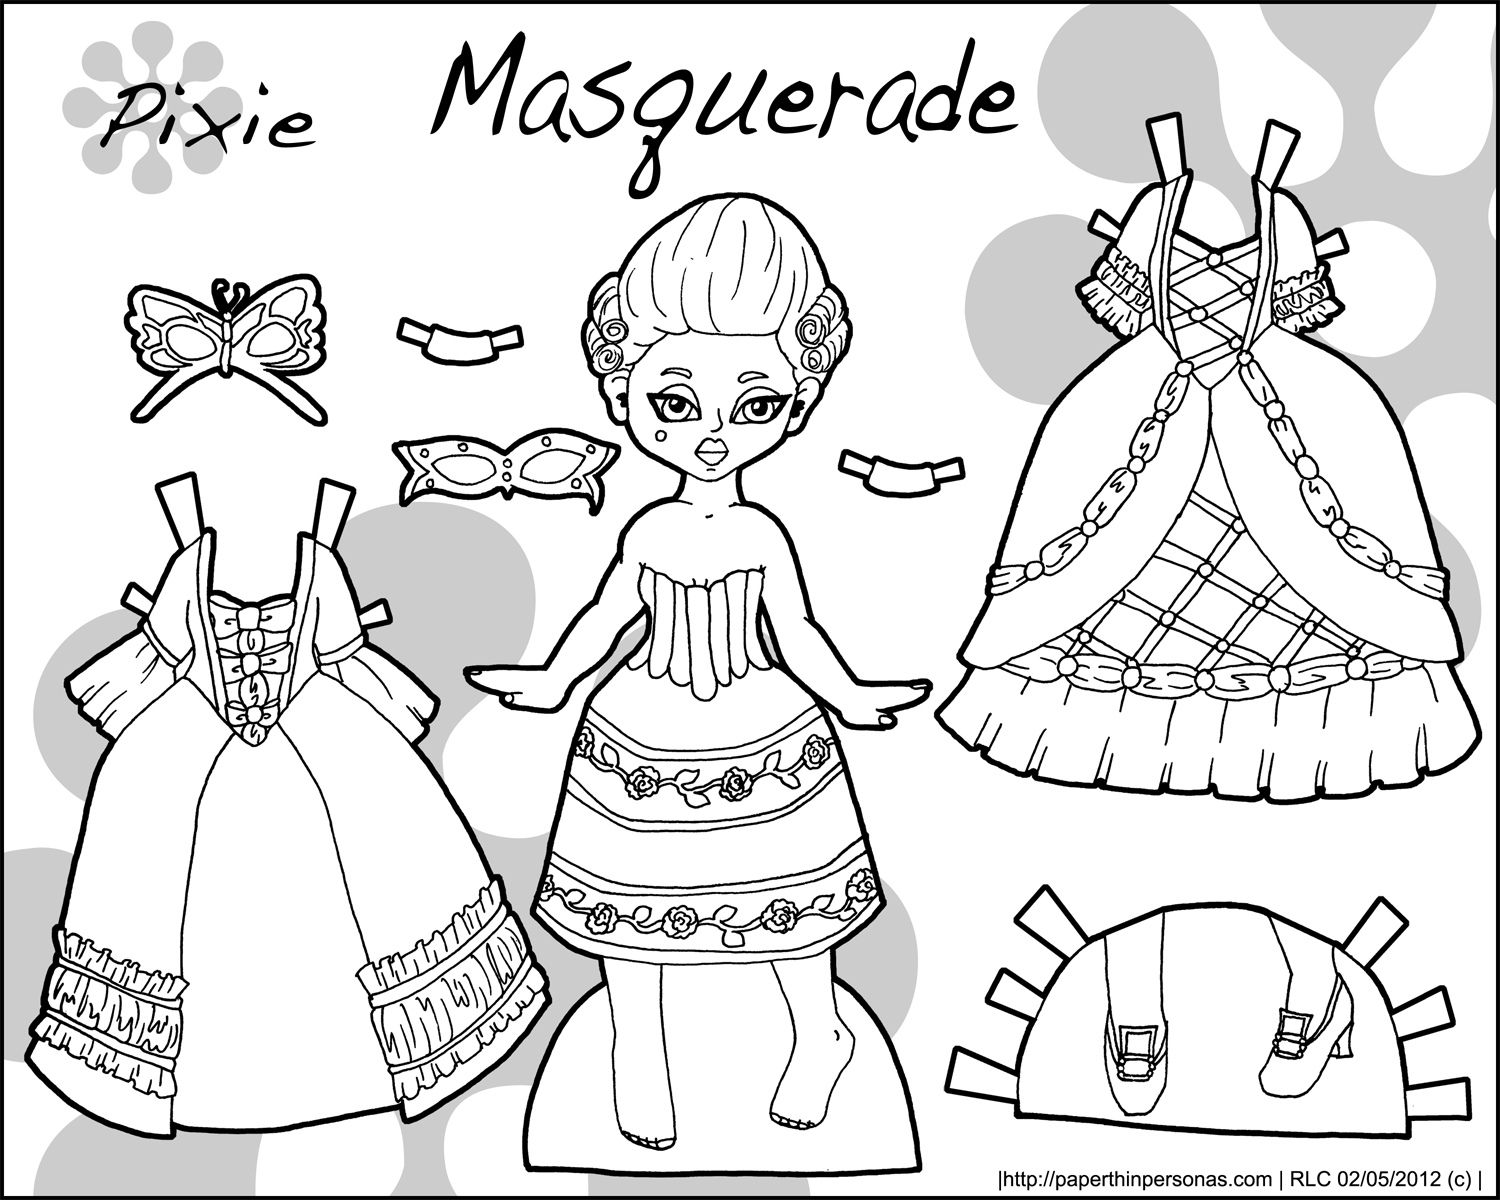 pixies printable paper dolls in black and white u2022 paper thin personas